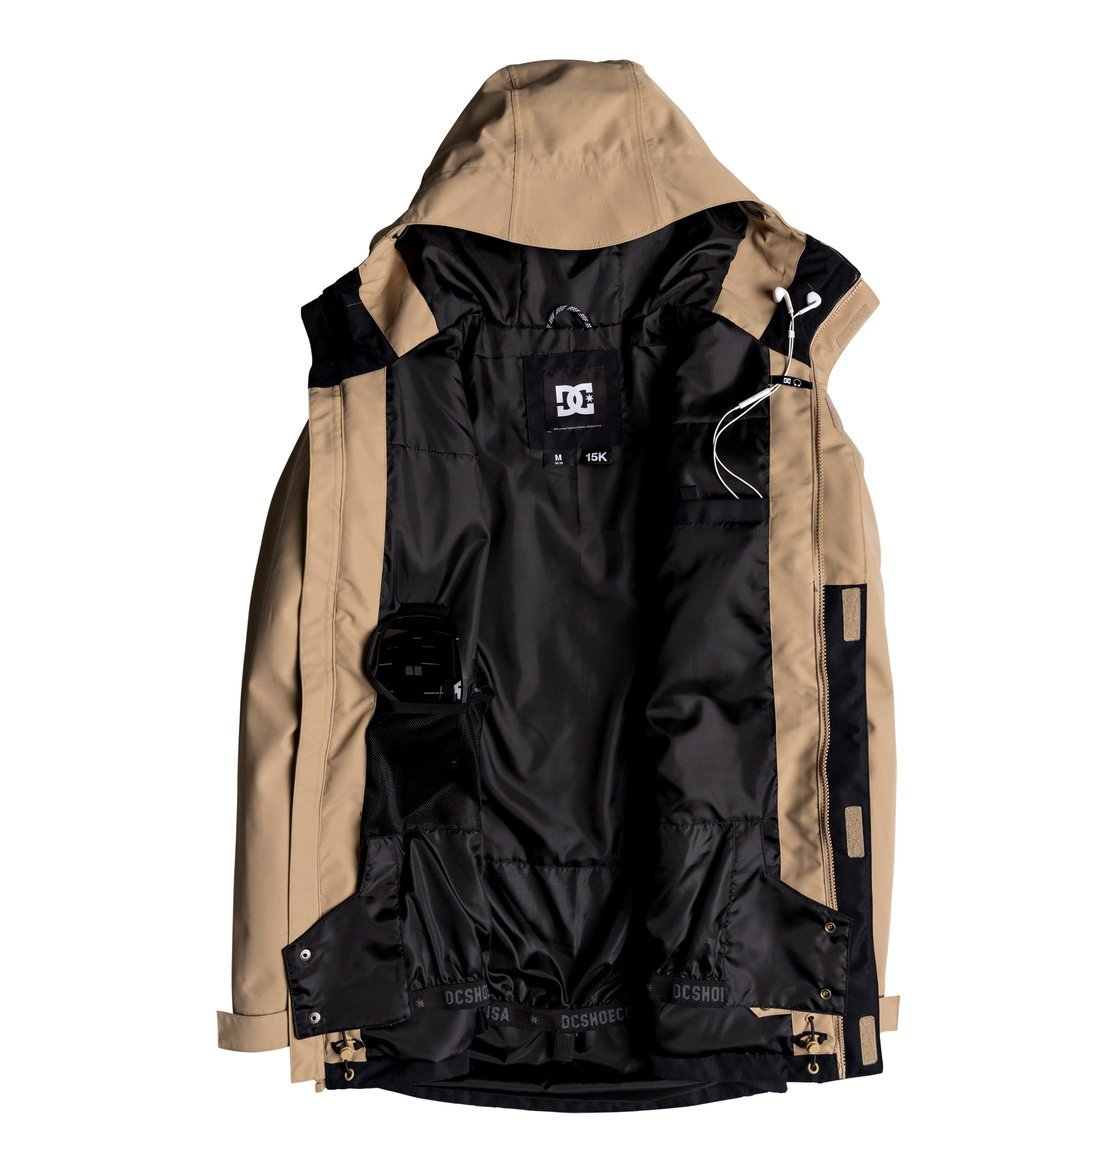 DC Shoes Merchant - Chaqueta Polar para Hombre: DC Shoes: Amazon.es: Deportes y aire libre